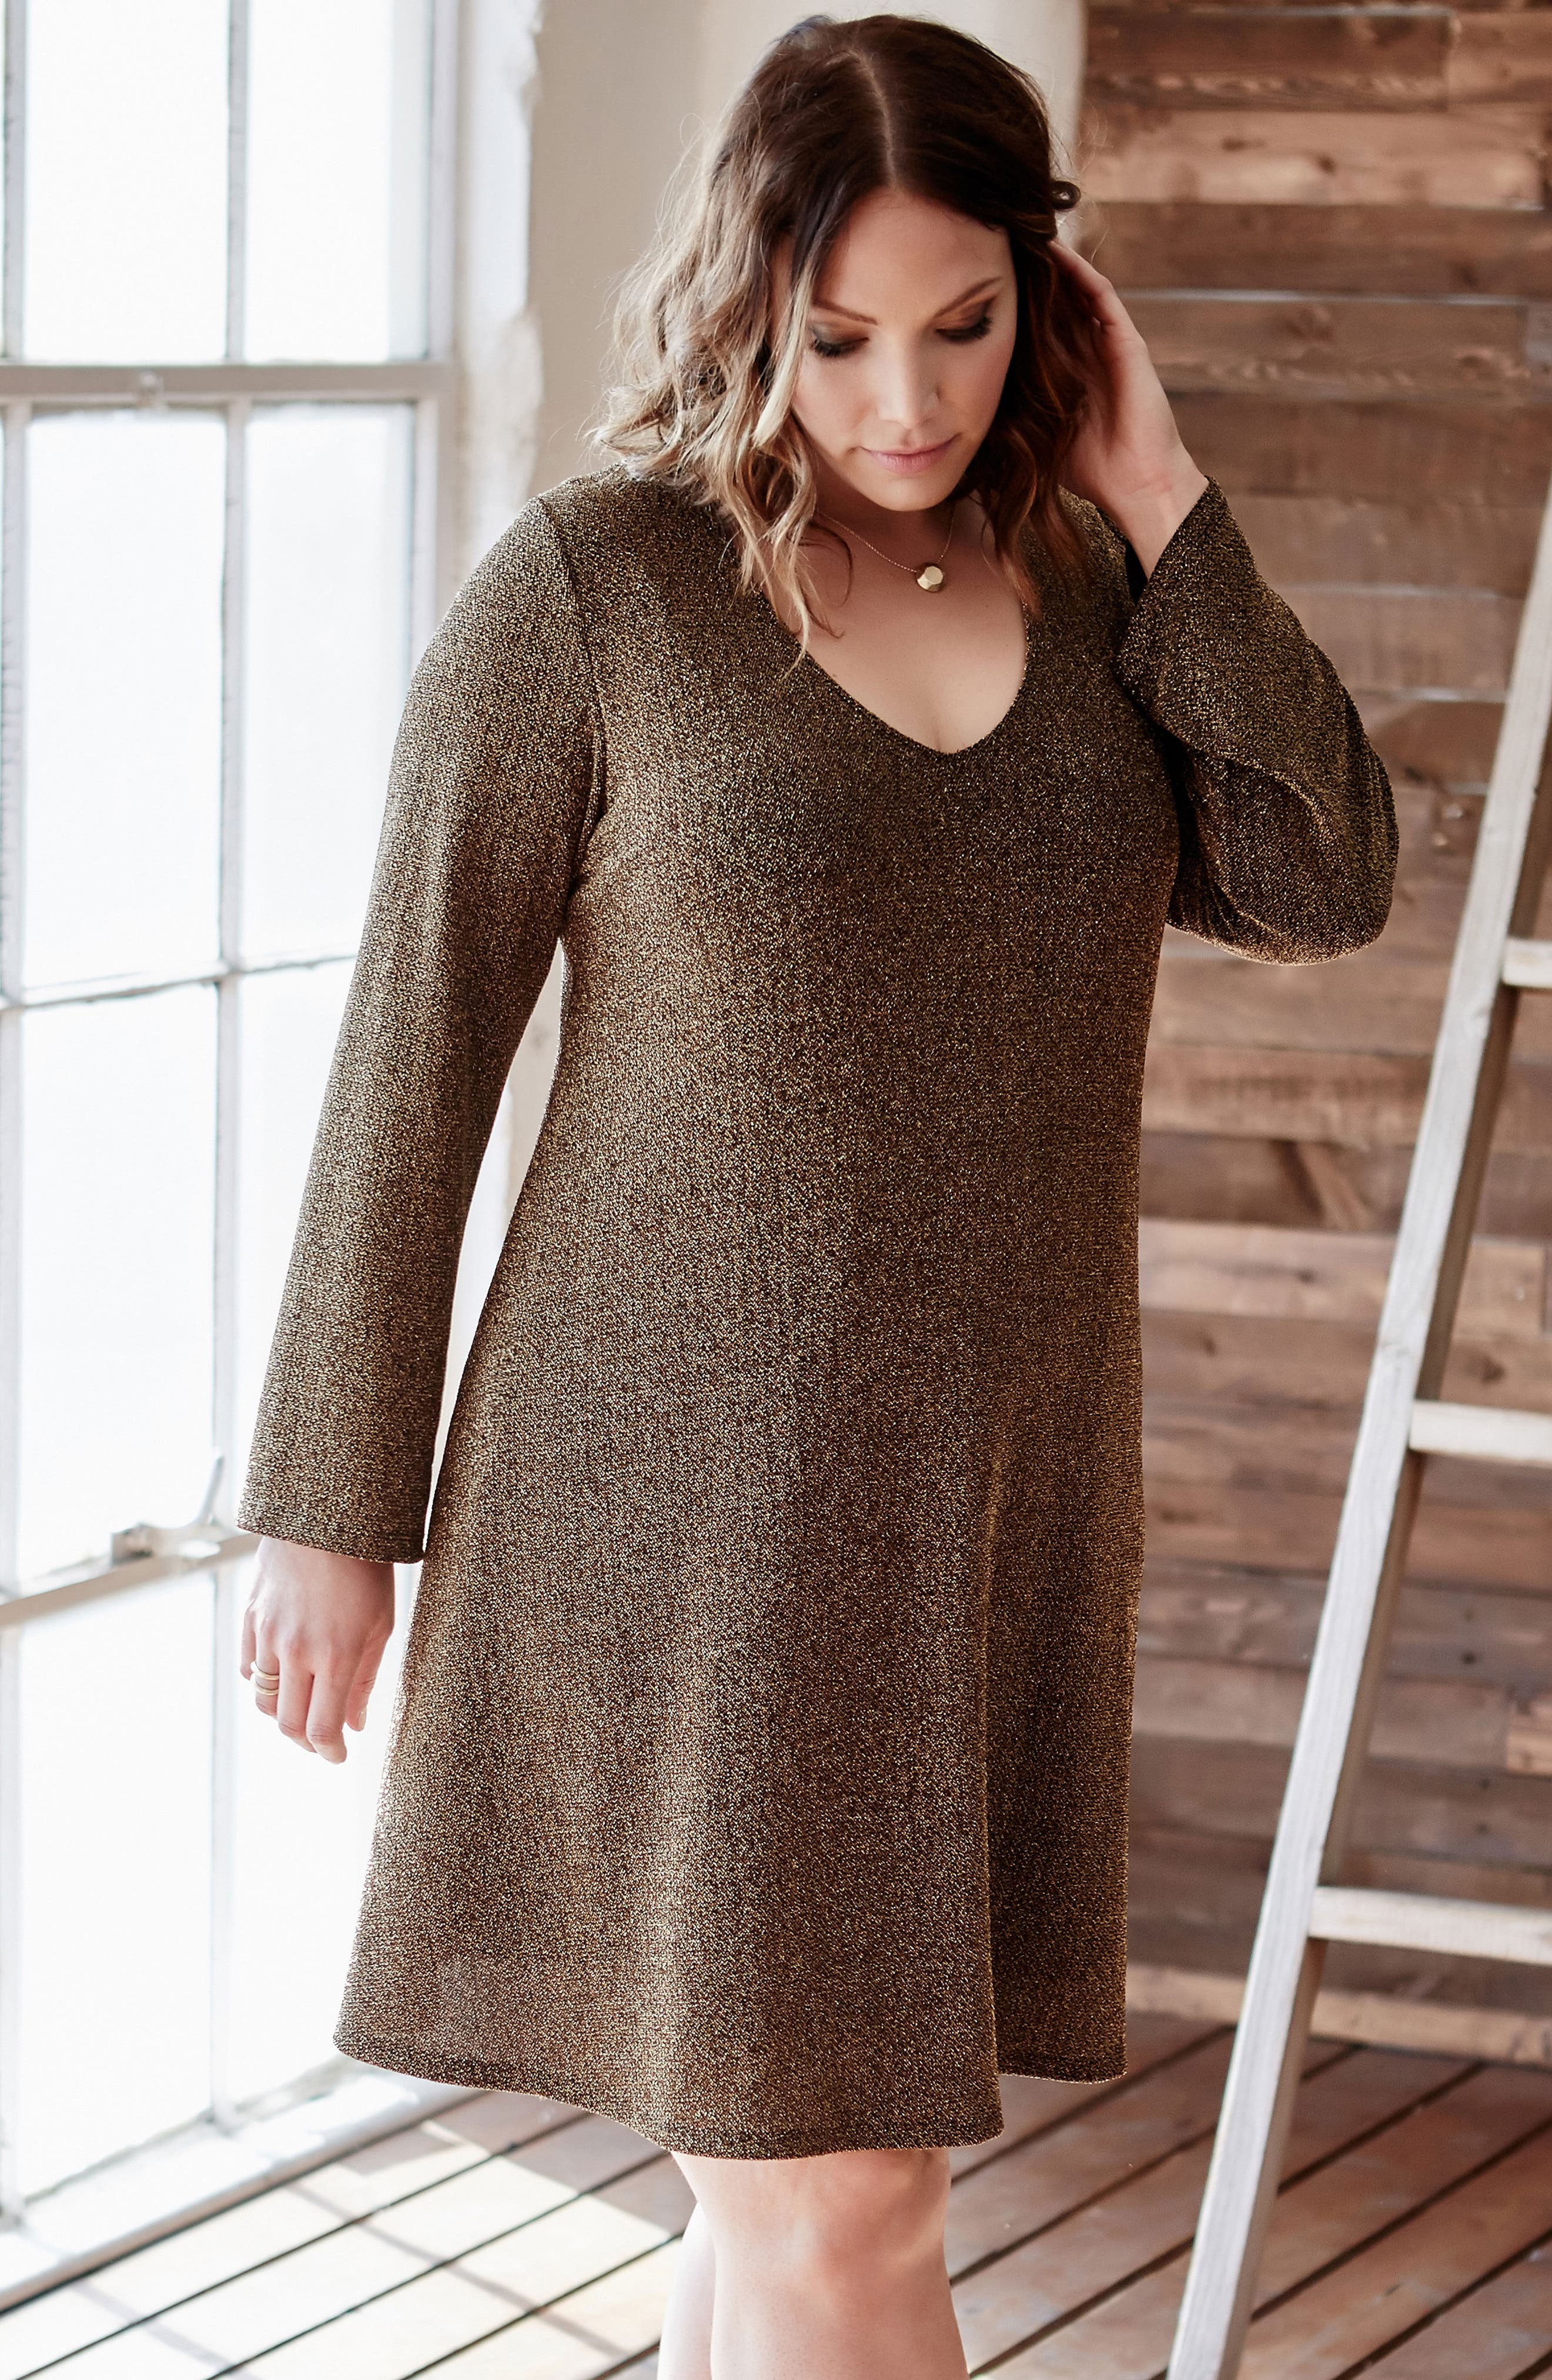 Taylor Gold Knit Dress,                             Alternate thumbnail 4, color,                             710